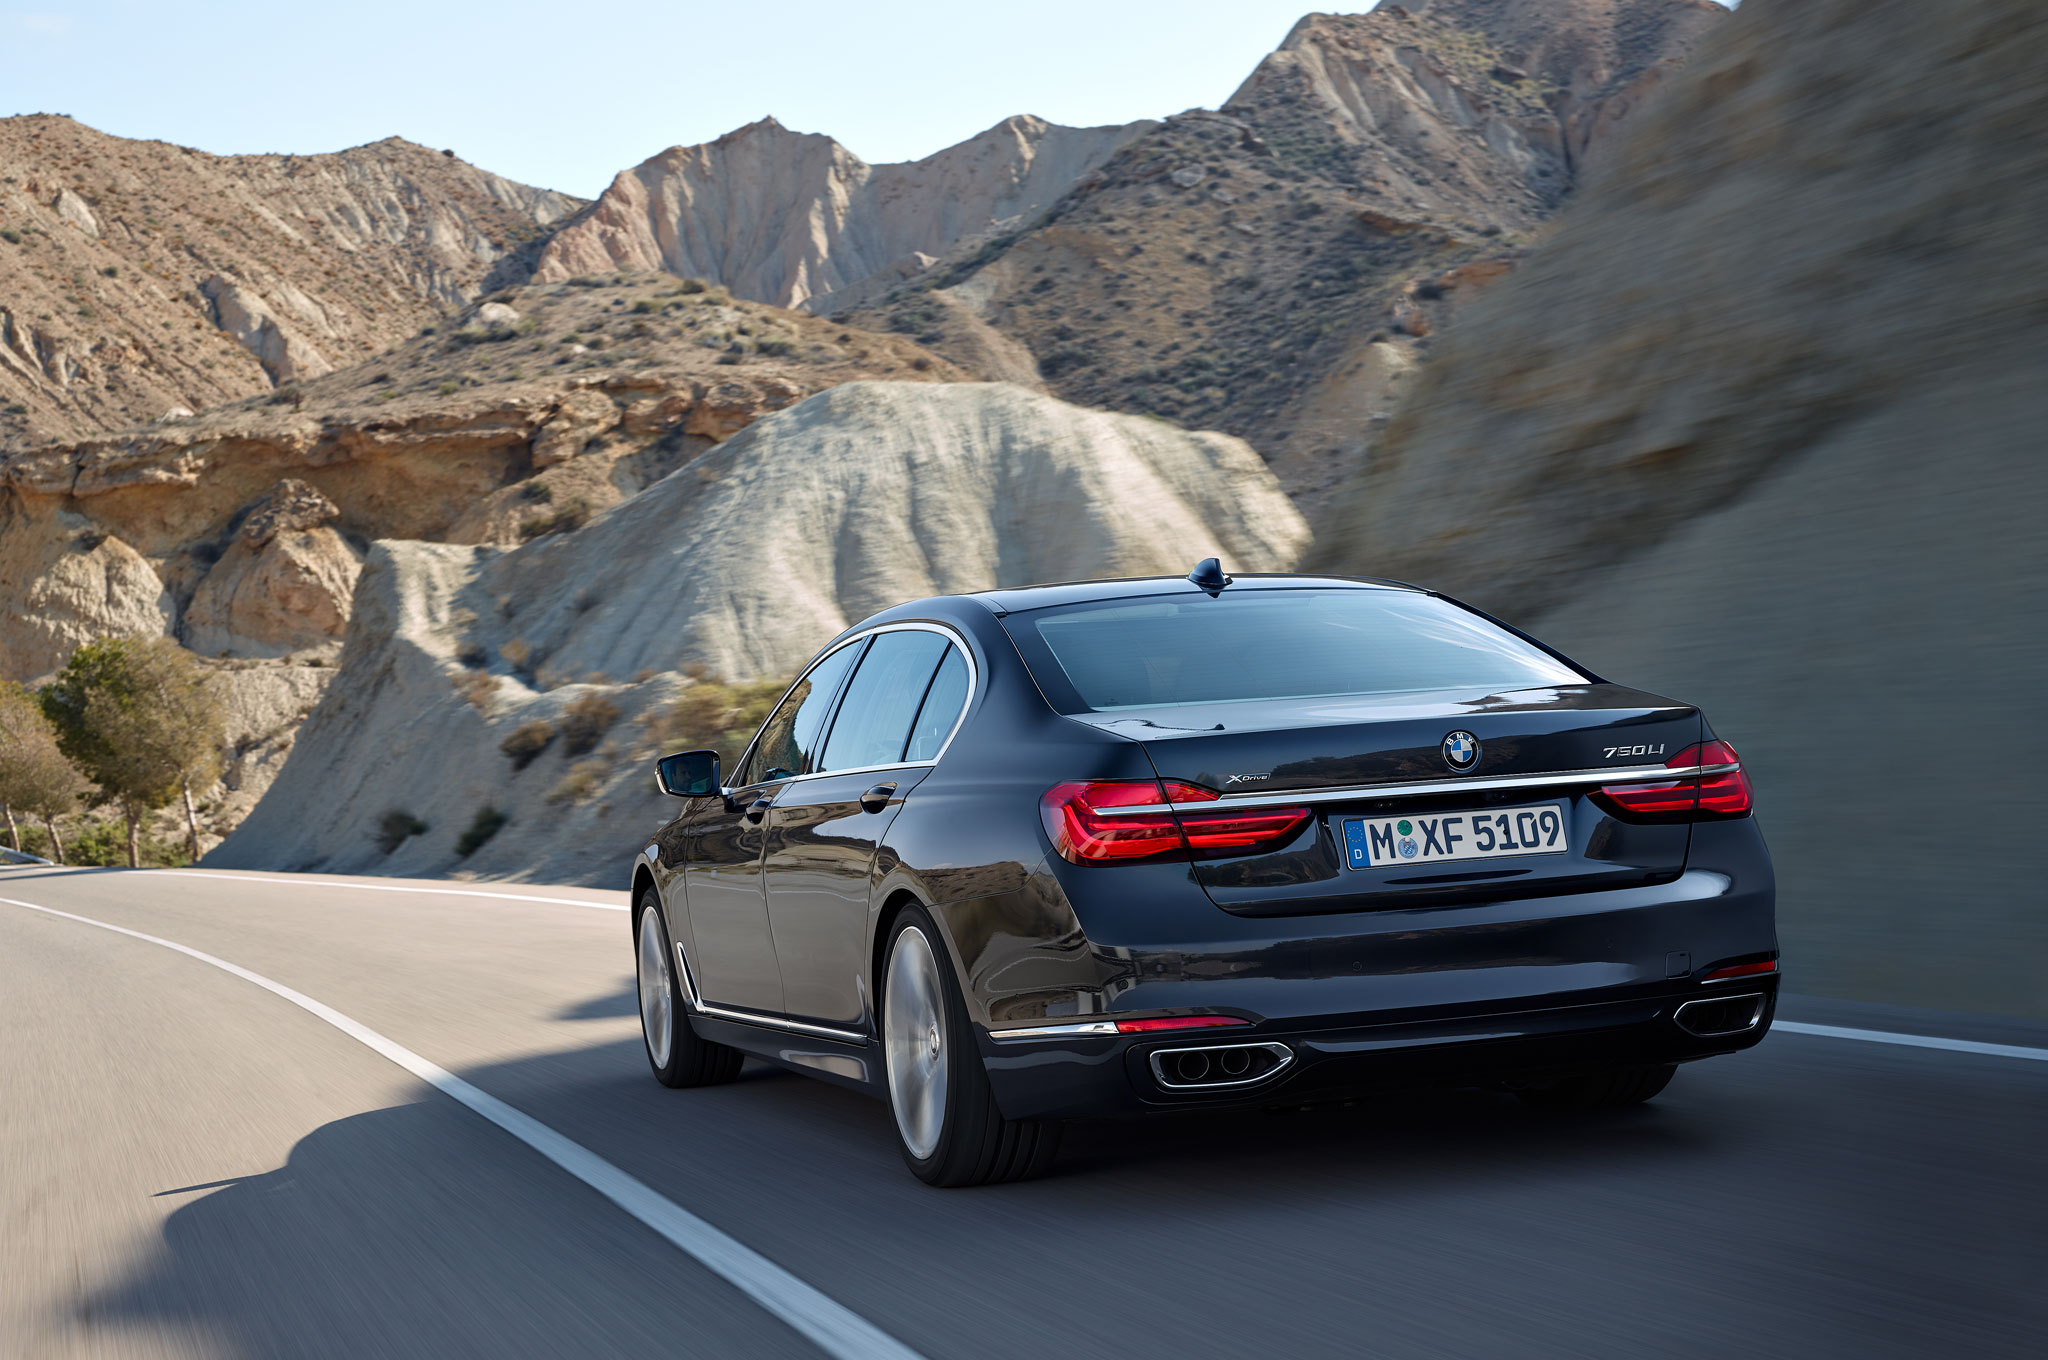 2016 BMW 750Li XDrive Rear Three Quarter In Motion 02